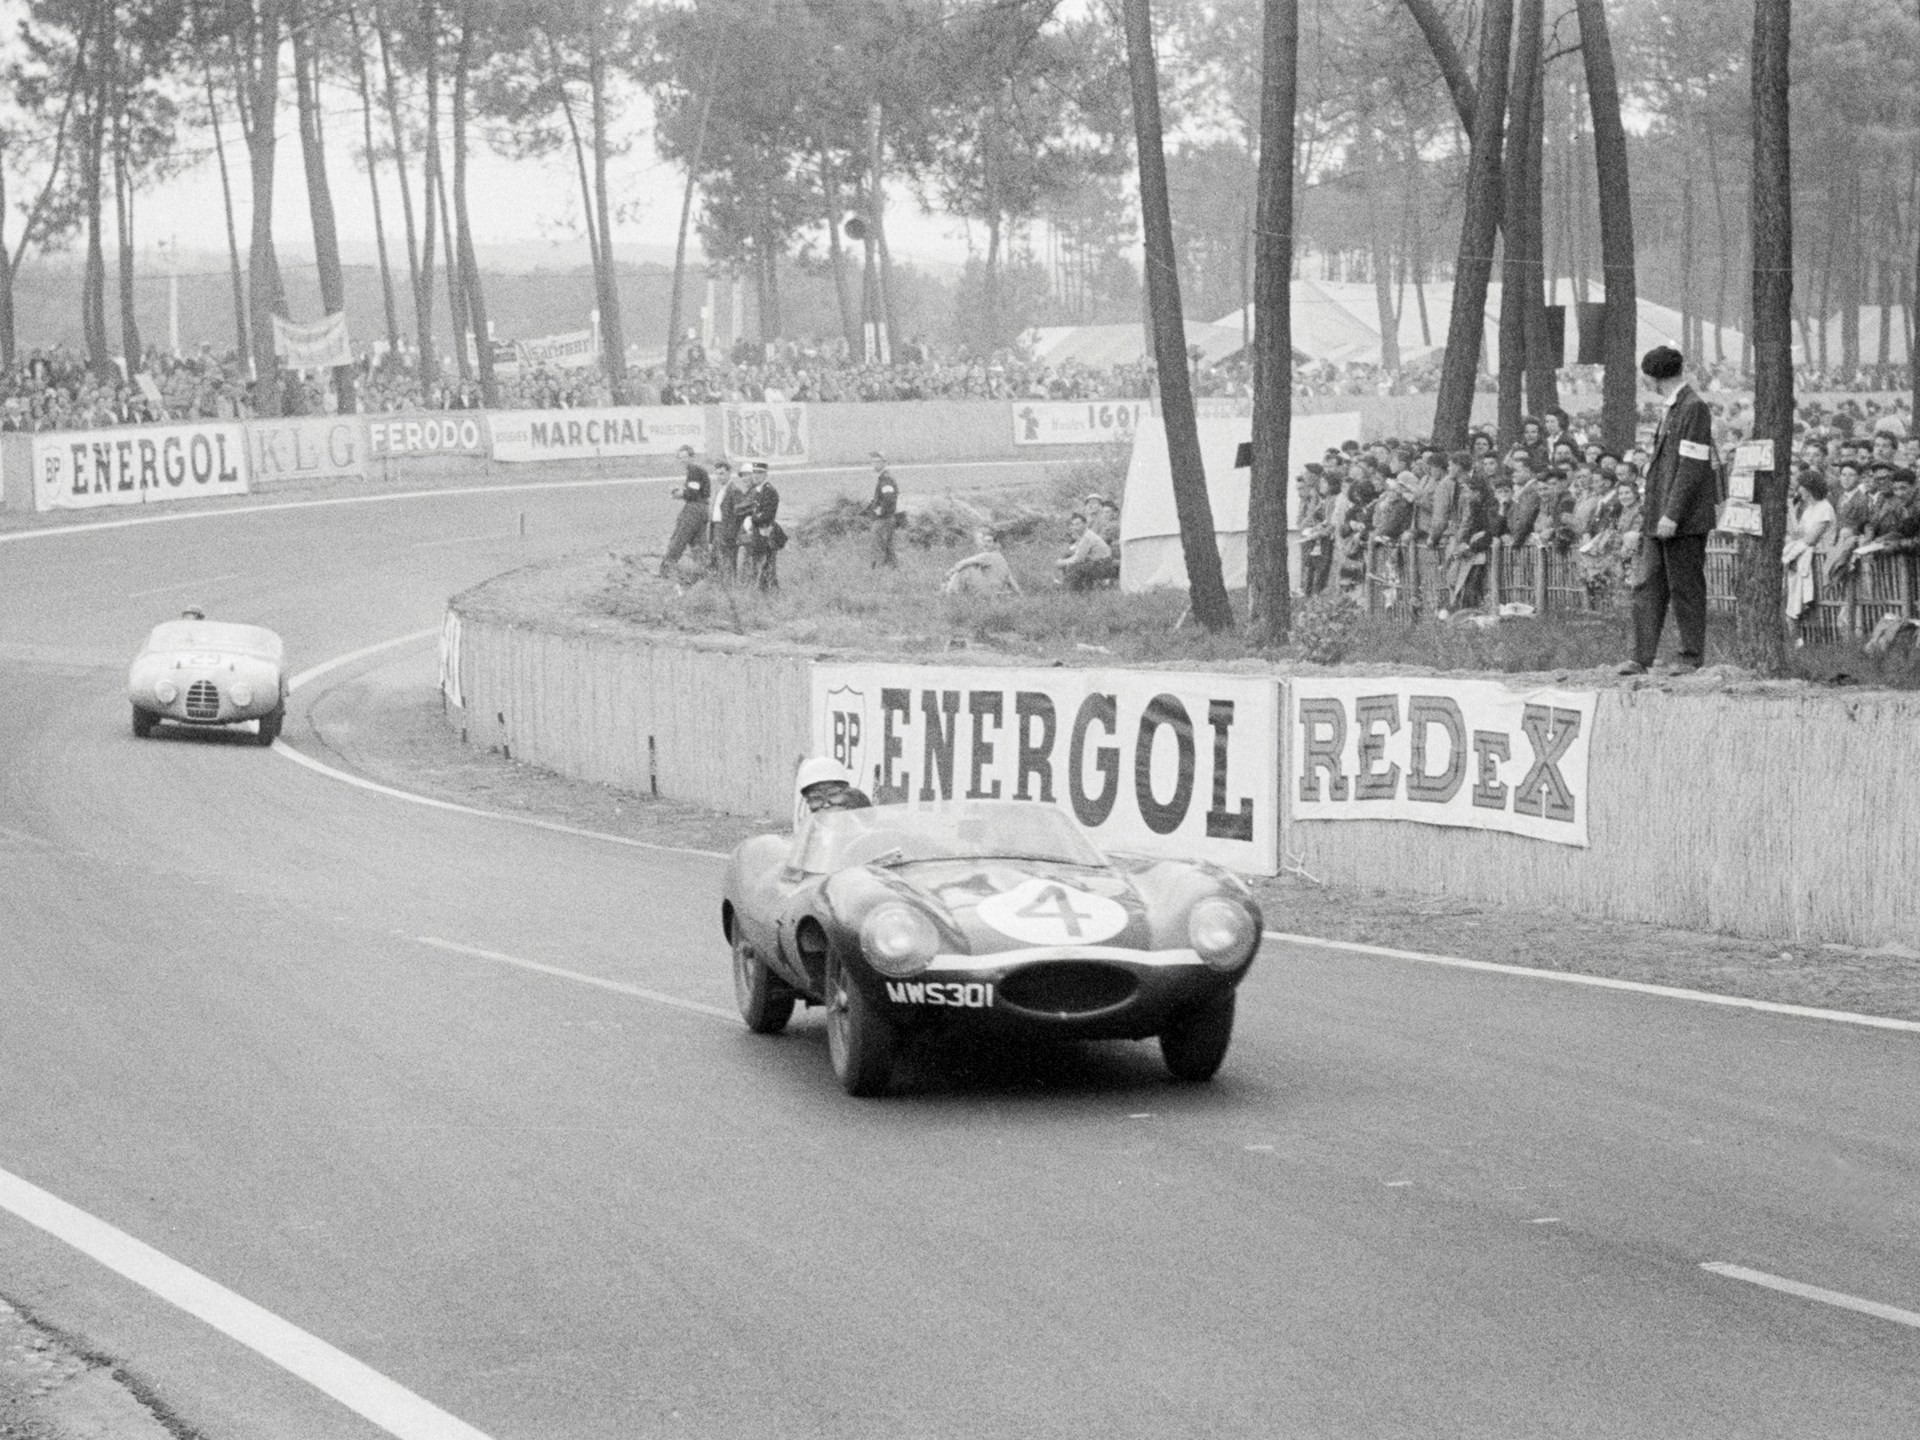 Chassis no. XKD 501 en route to a first place finish at the 1956 24 Hours of Le Mans.